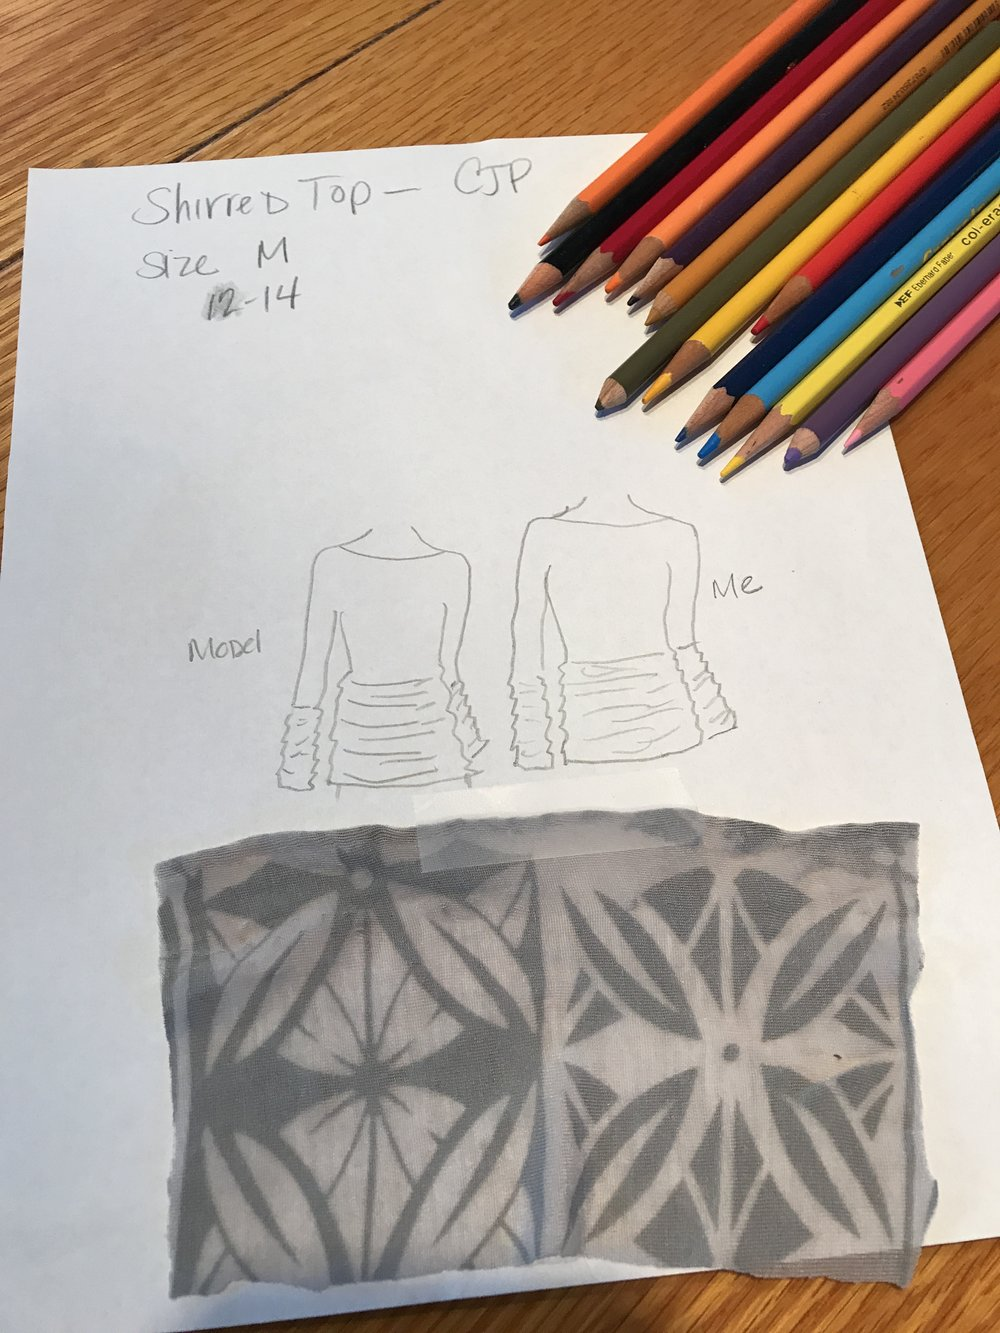 CJP Capsule FW Sketching Top.JPG